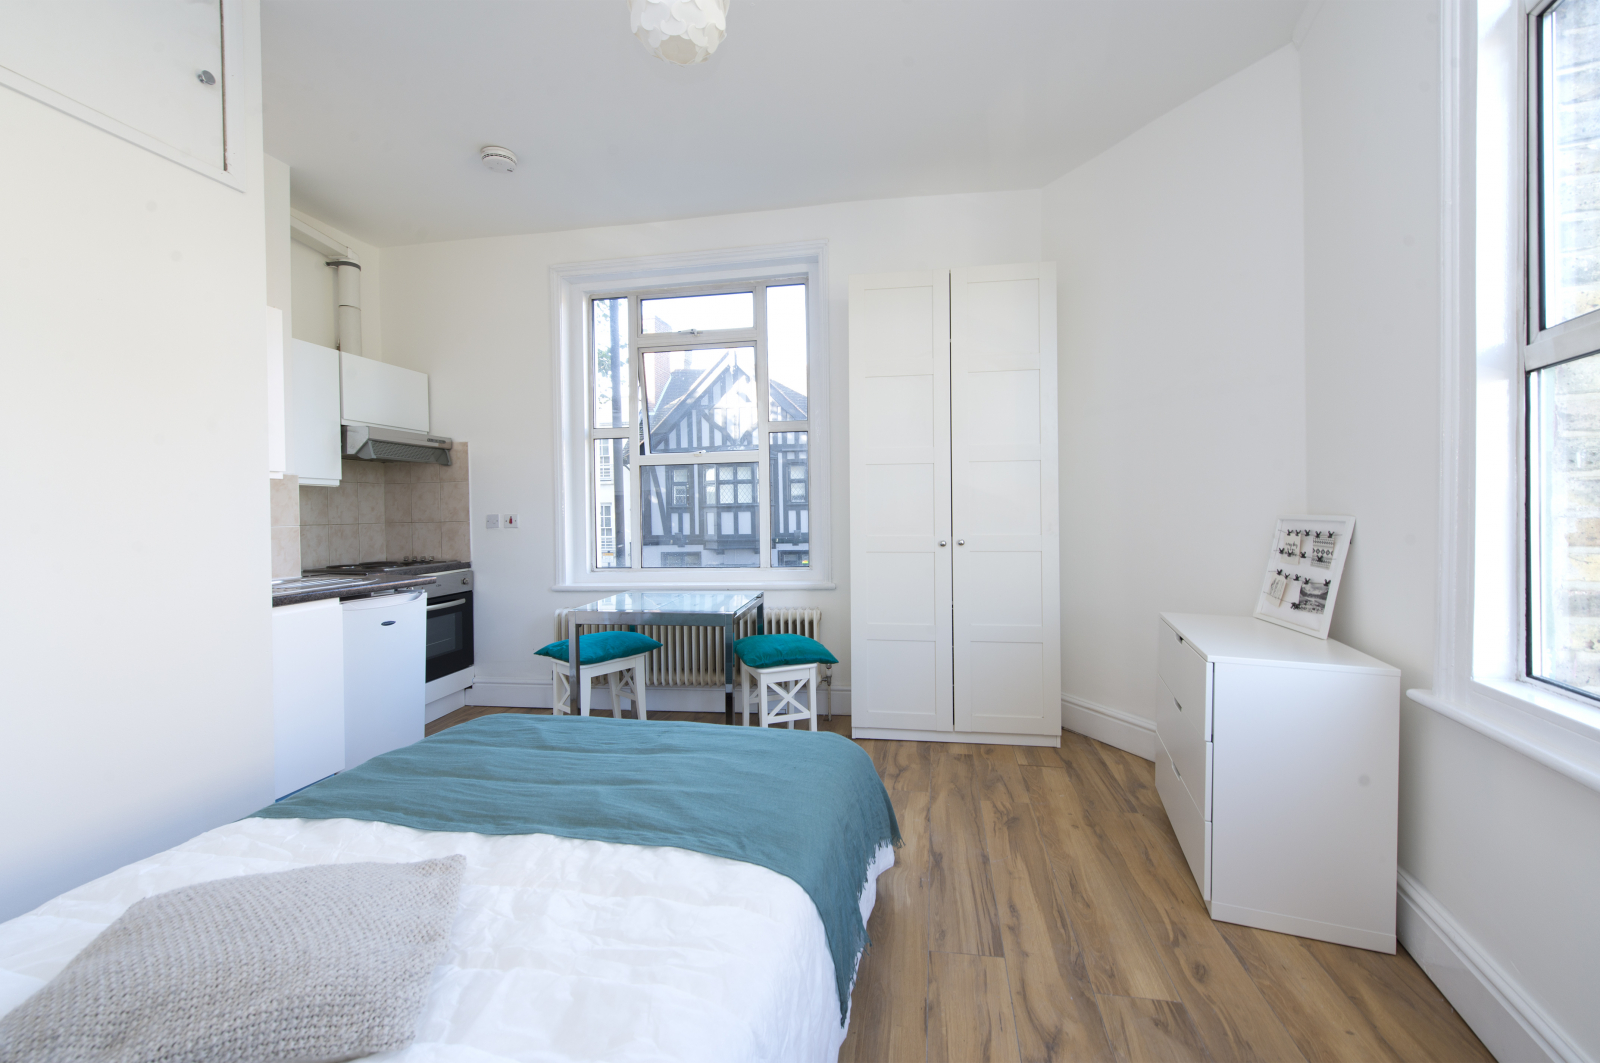 Studio flat to rent in Dalling road, Hammersmith, London  - Property Image 2